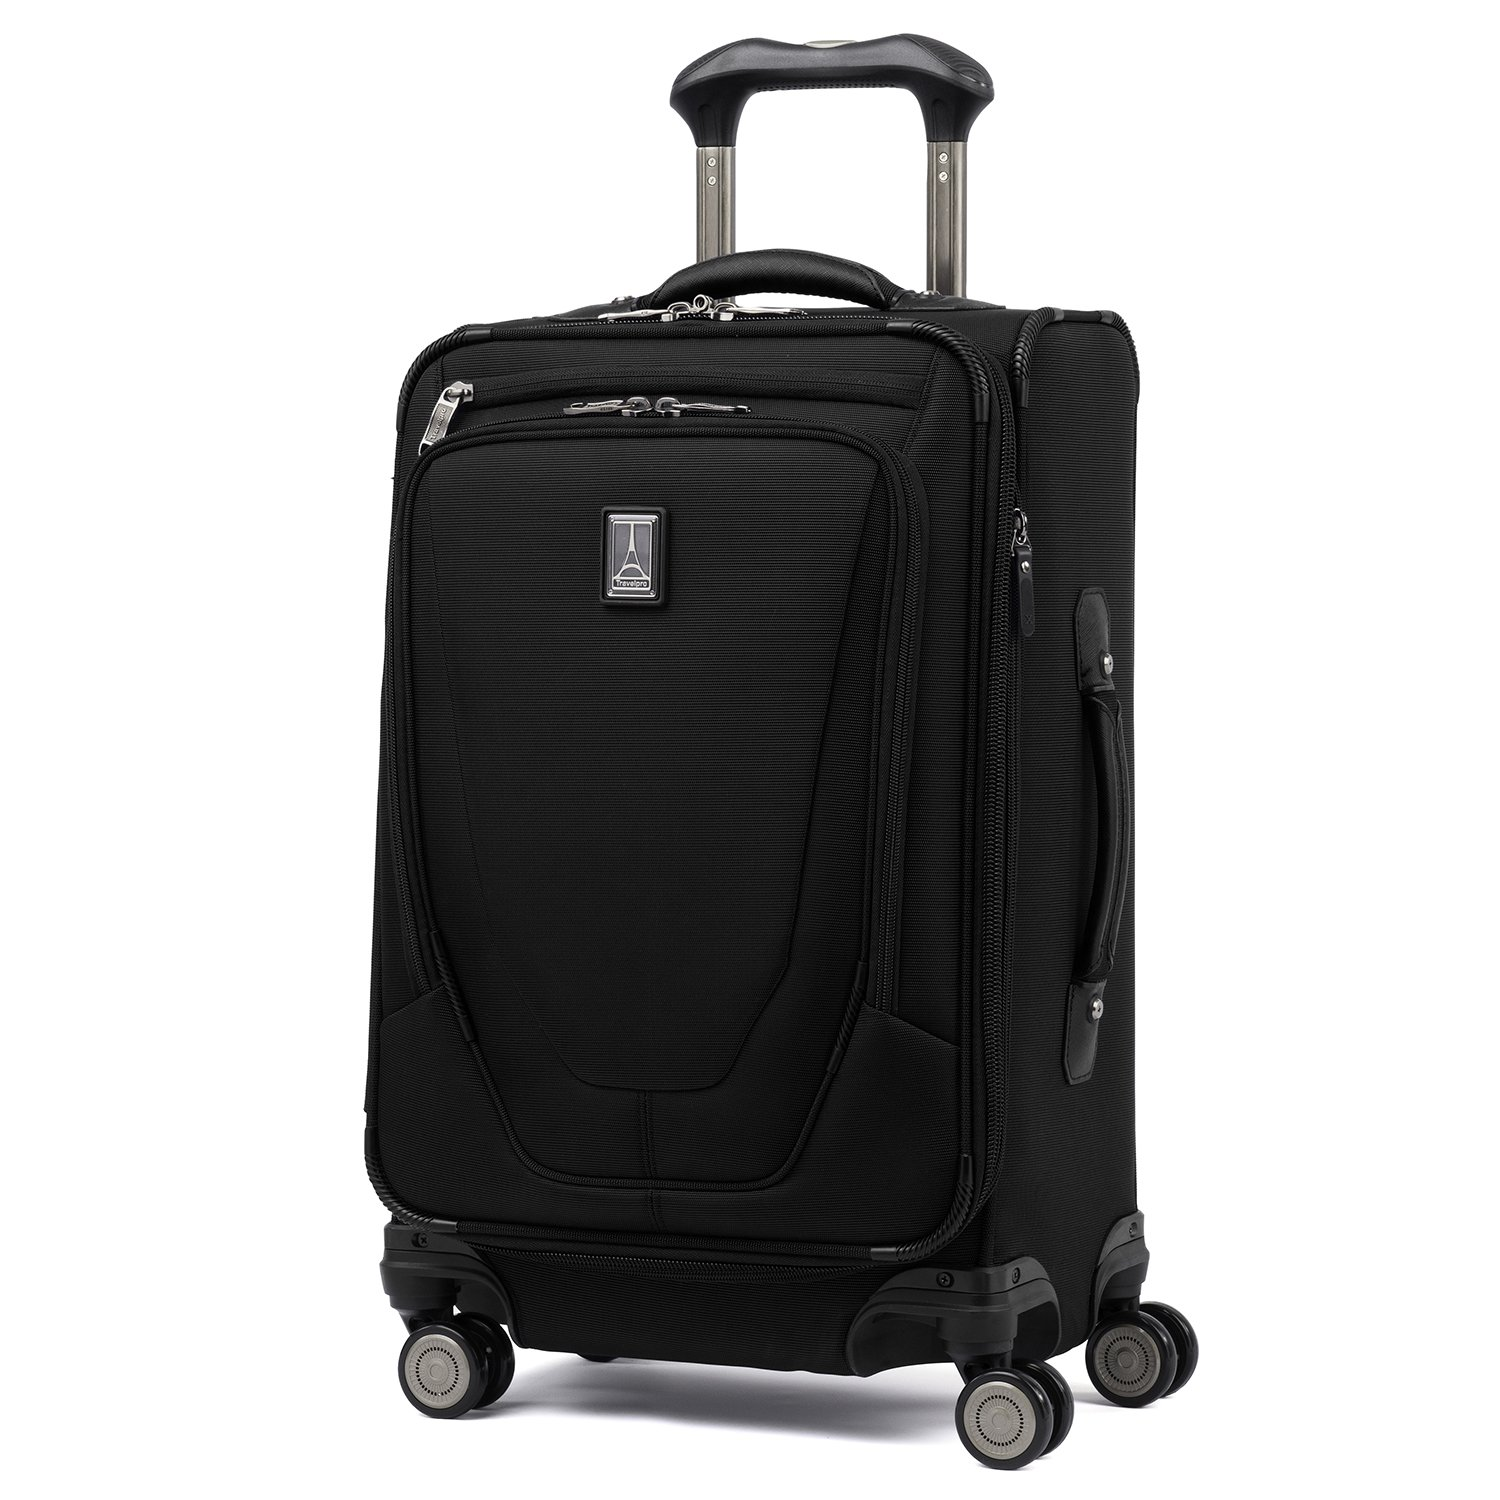 Travelpro Crew 11 Intl Spinner Carry On Luggage, Black Travelpro International Inc. 407166701